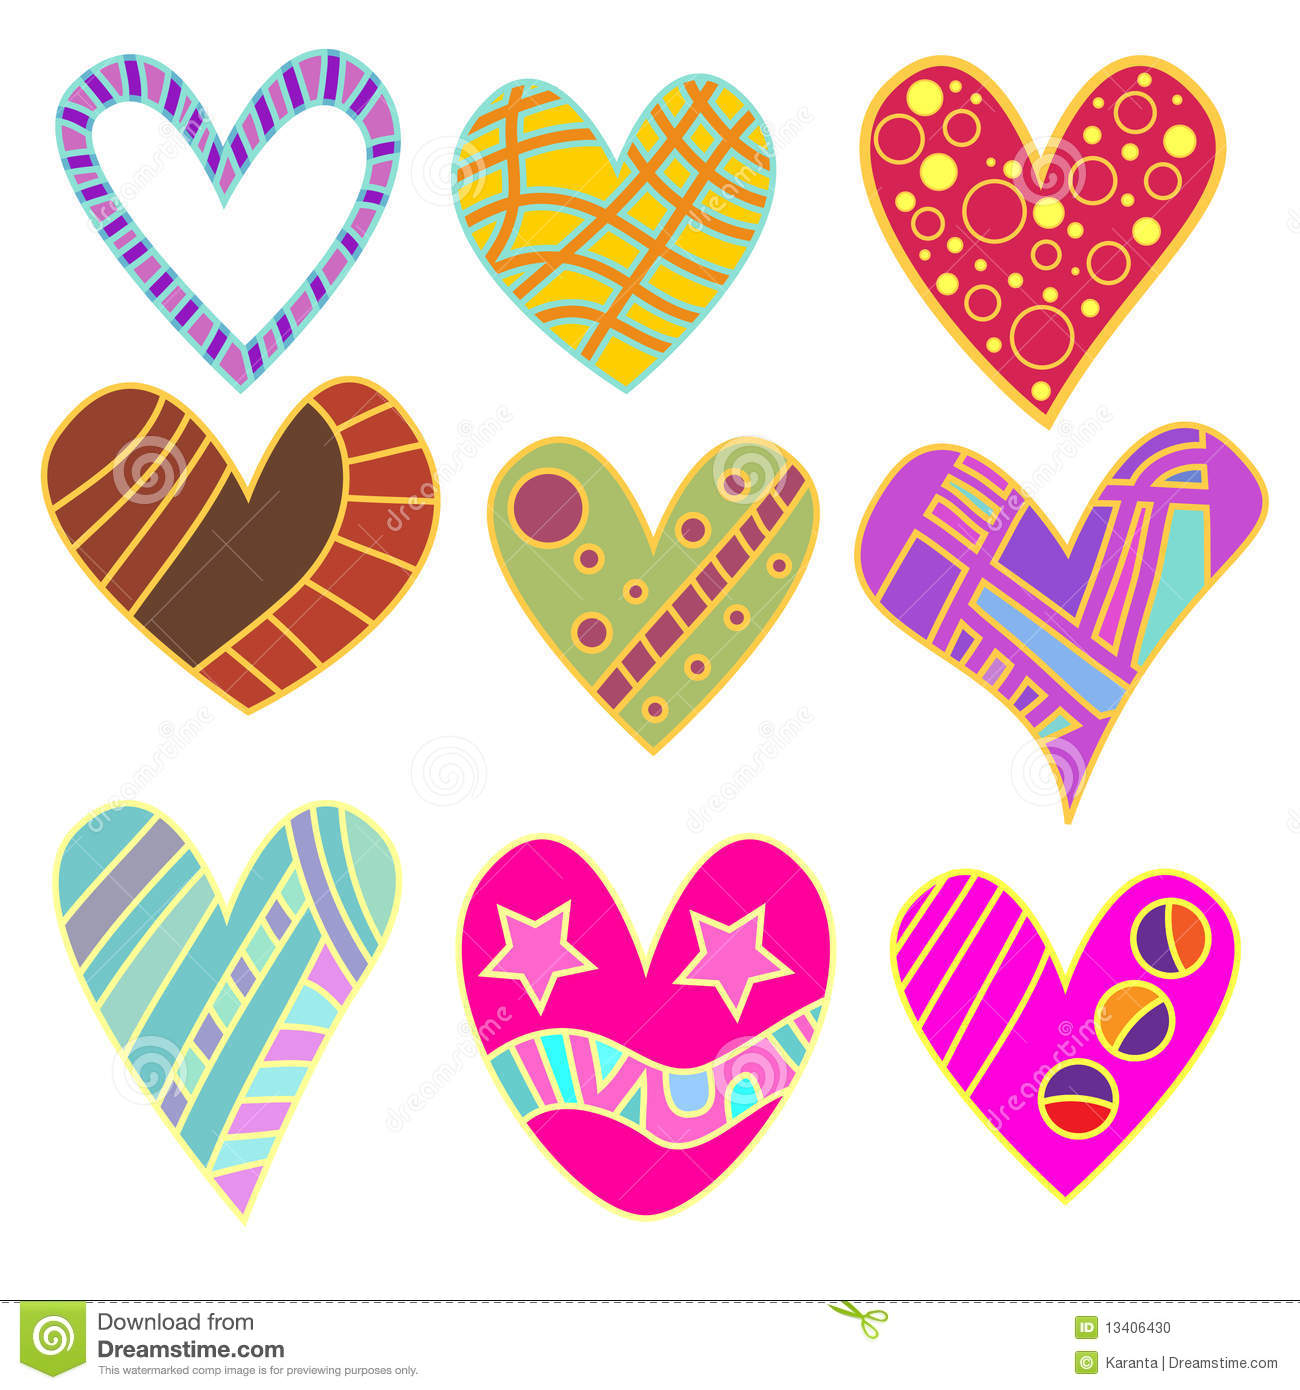 Whimsical heart collection